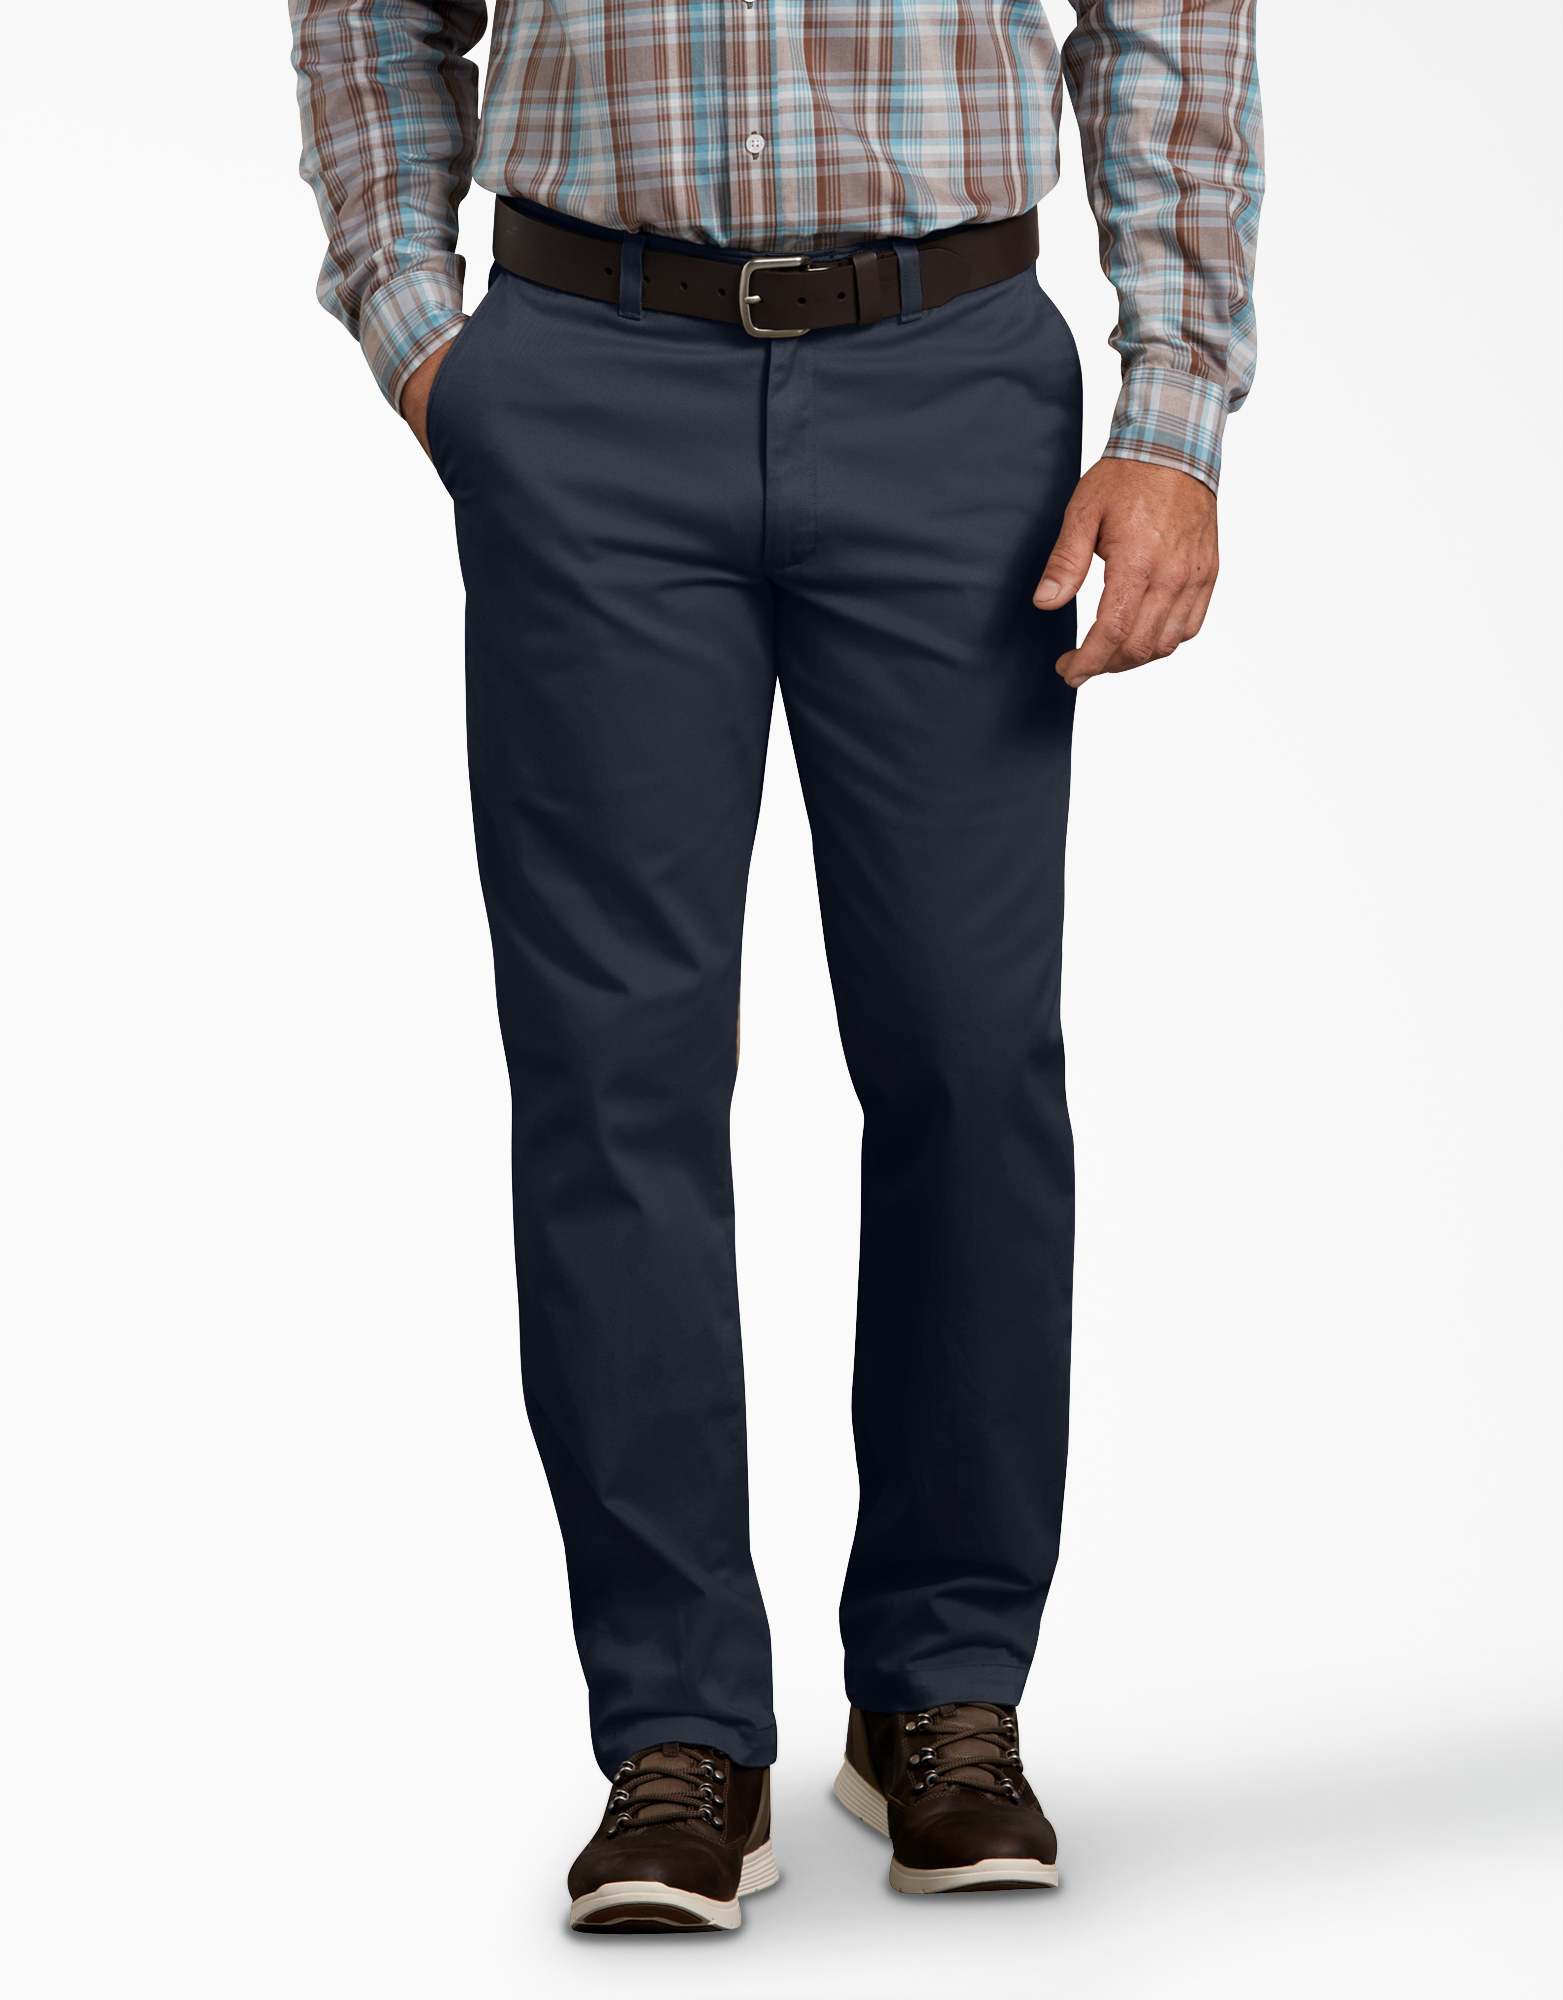 Dickies X-Series Active Waist Regular Tapered Fit Washed Chino Pants - Dark Navy Blue (RDN)